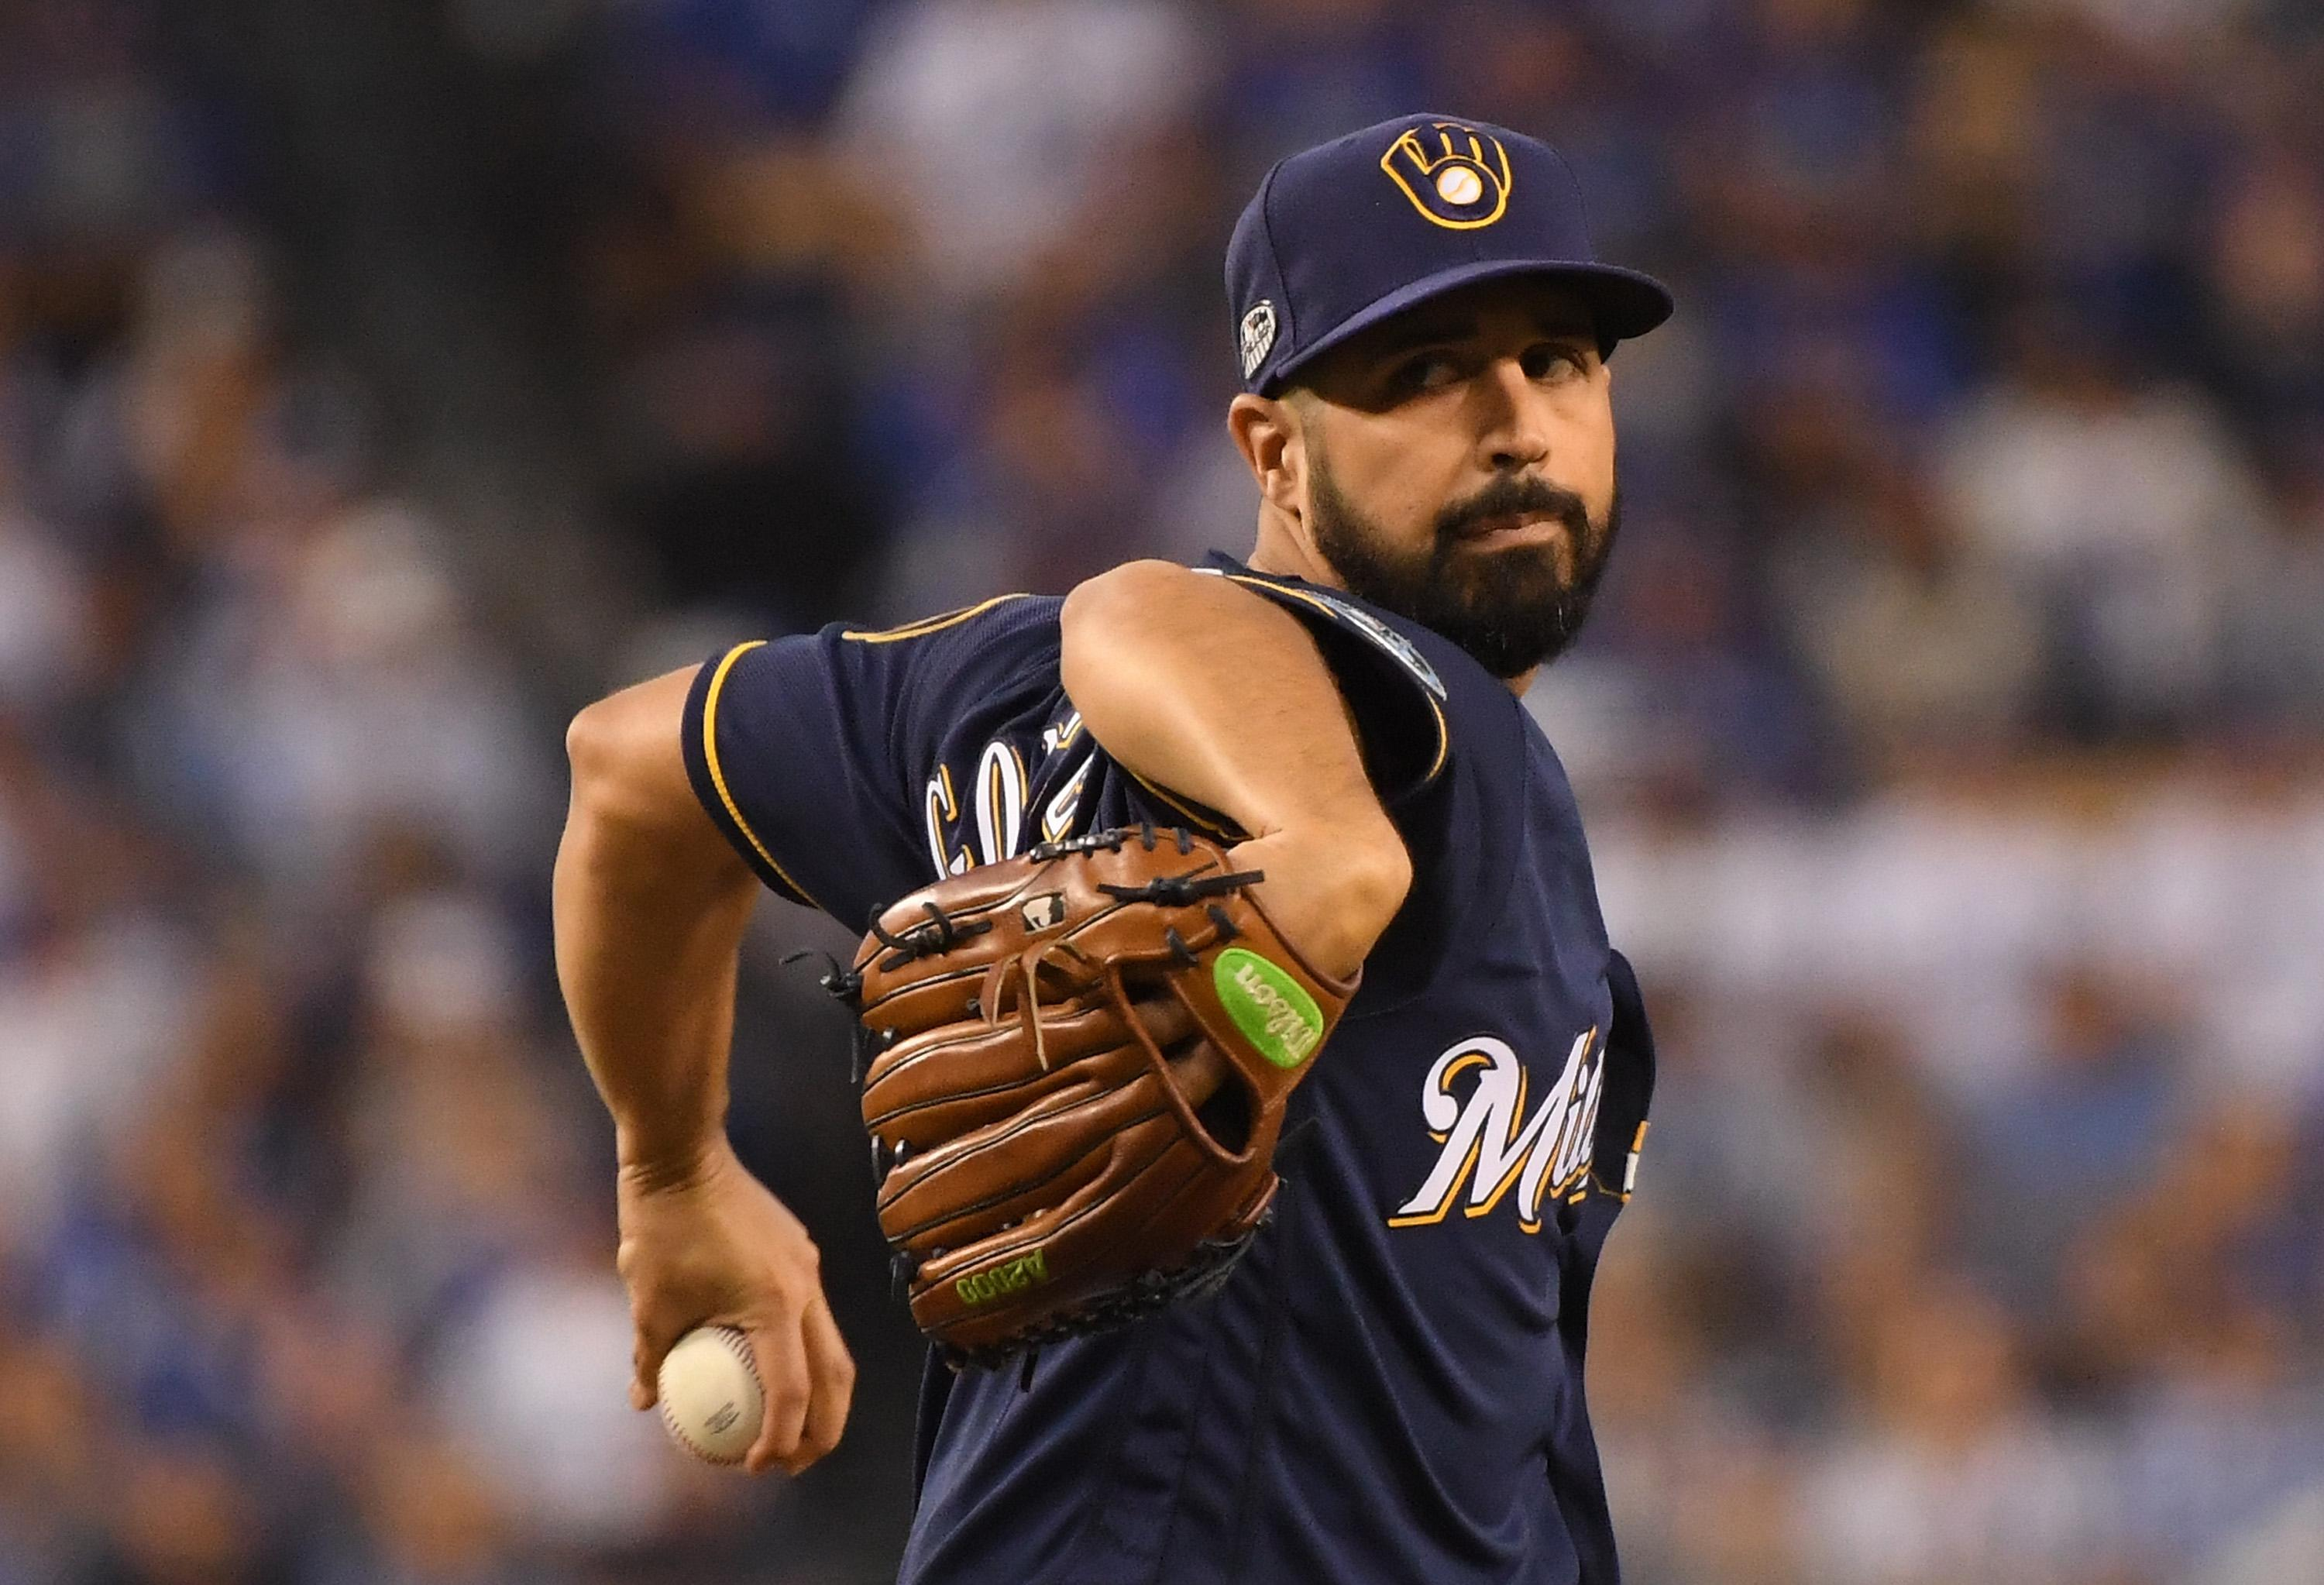 Yankees Agree to Minor League Deal With LHP Gio Gonzalez